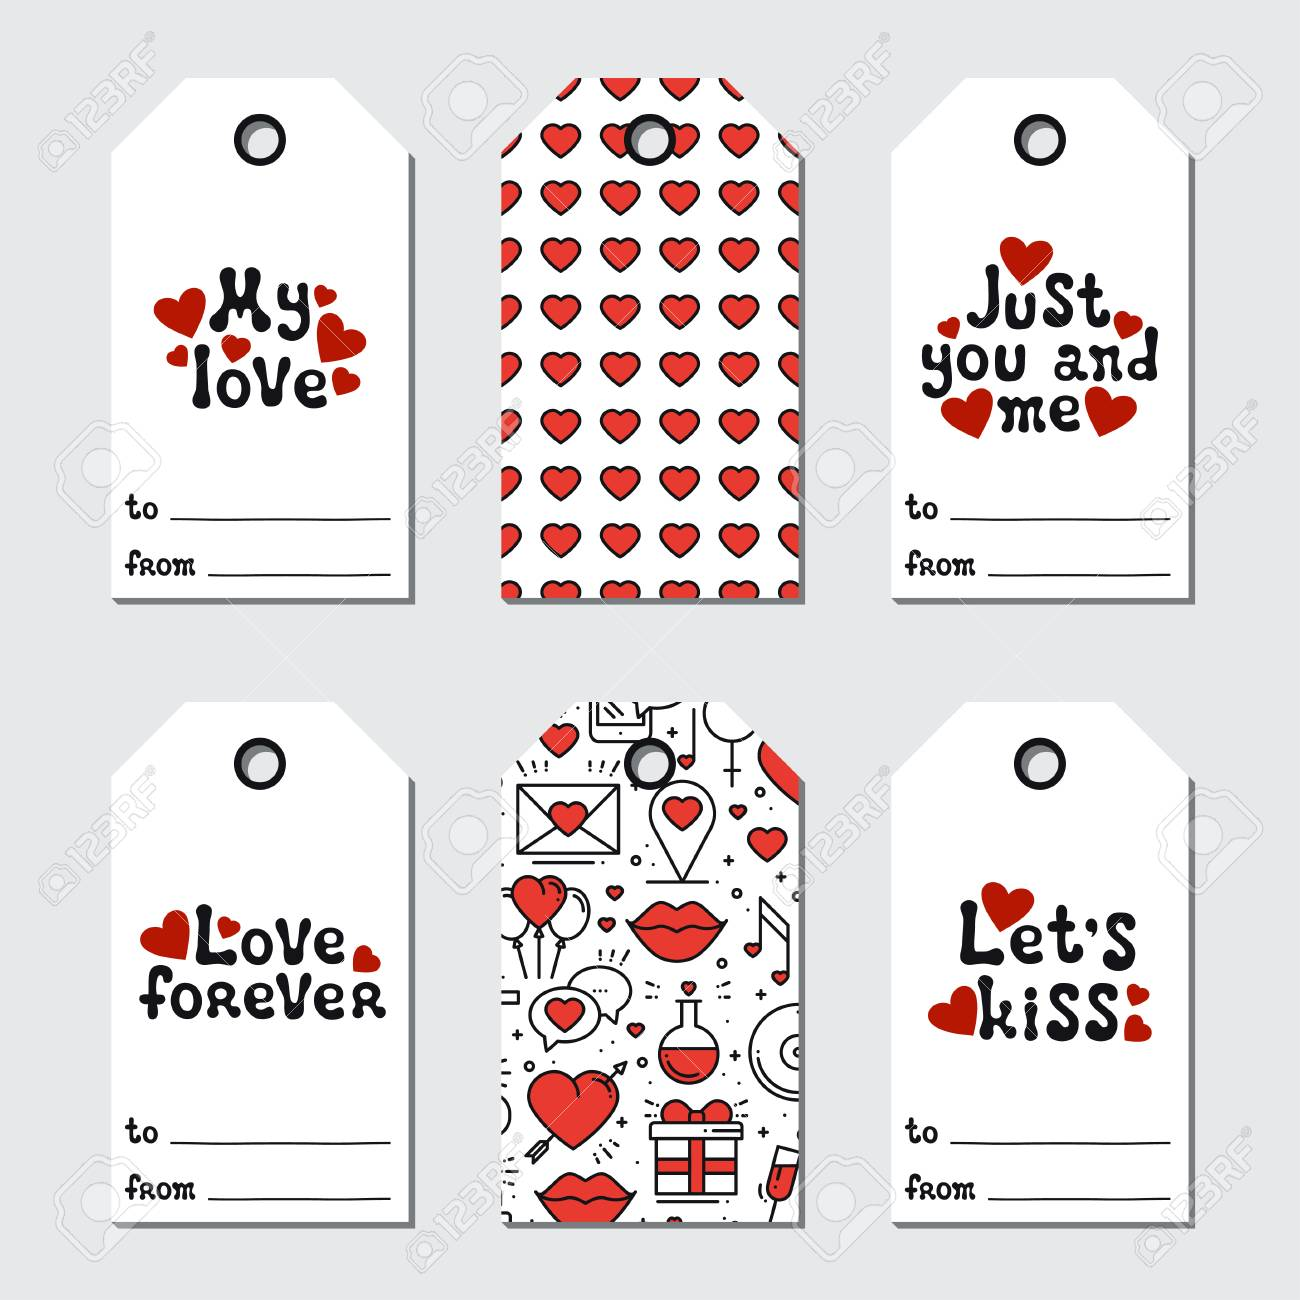 photo relating to Holiday Tags Printable named St Valentines working day reward tags. Printable tags choice. Appreciate,..